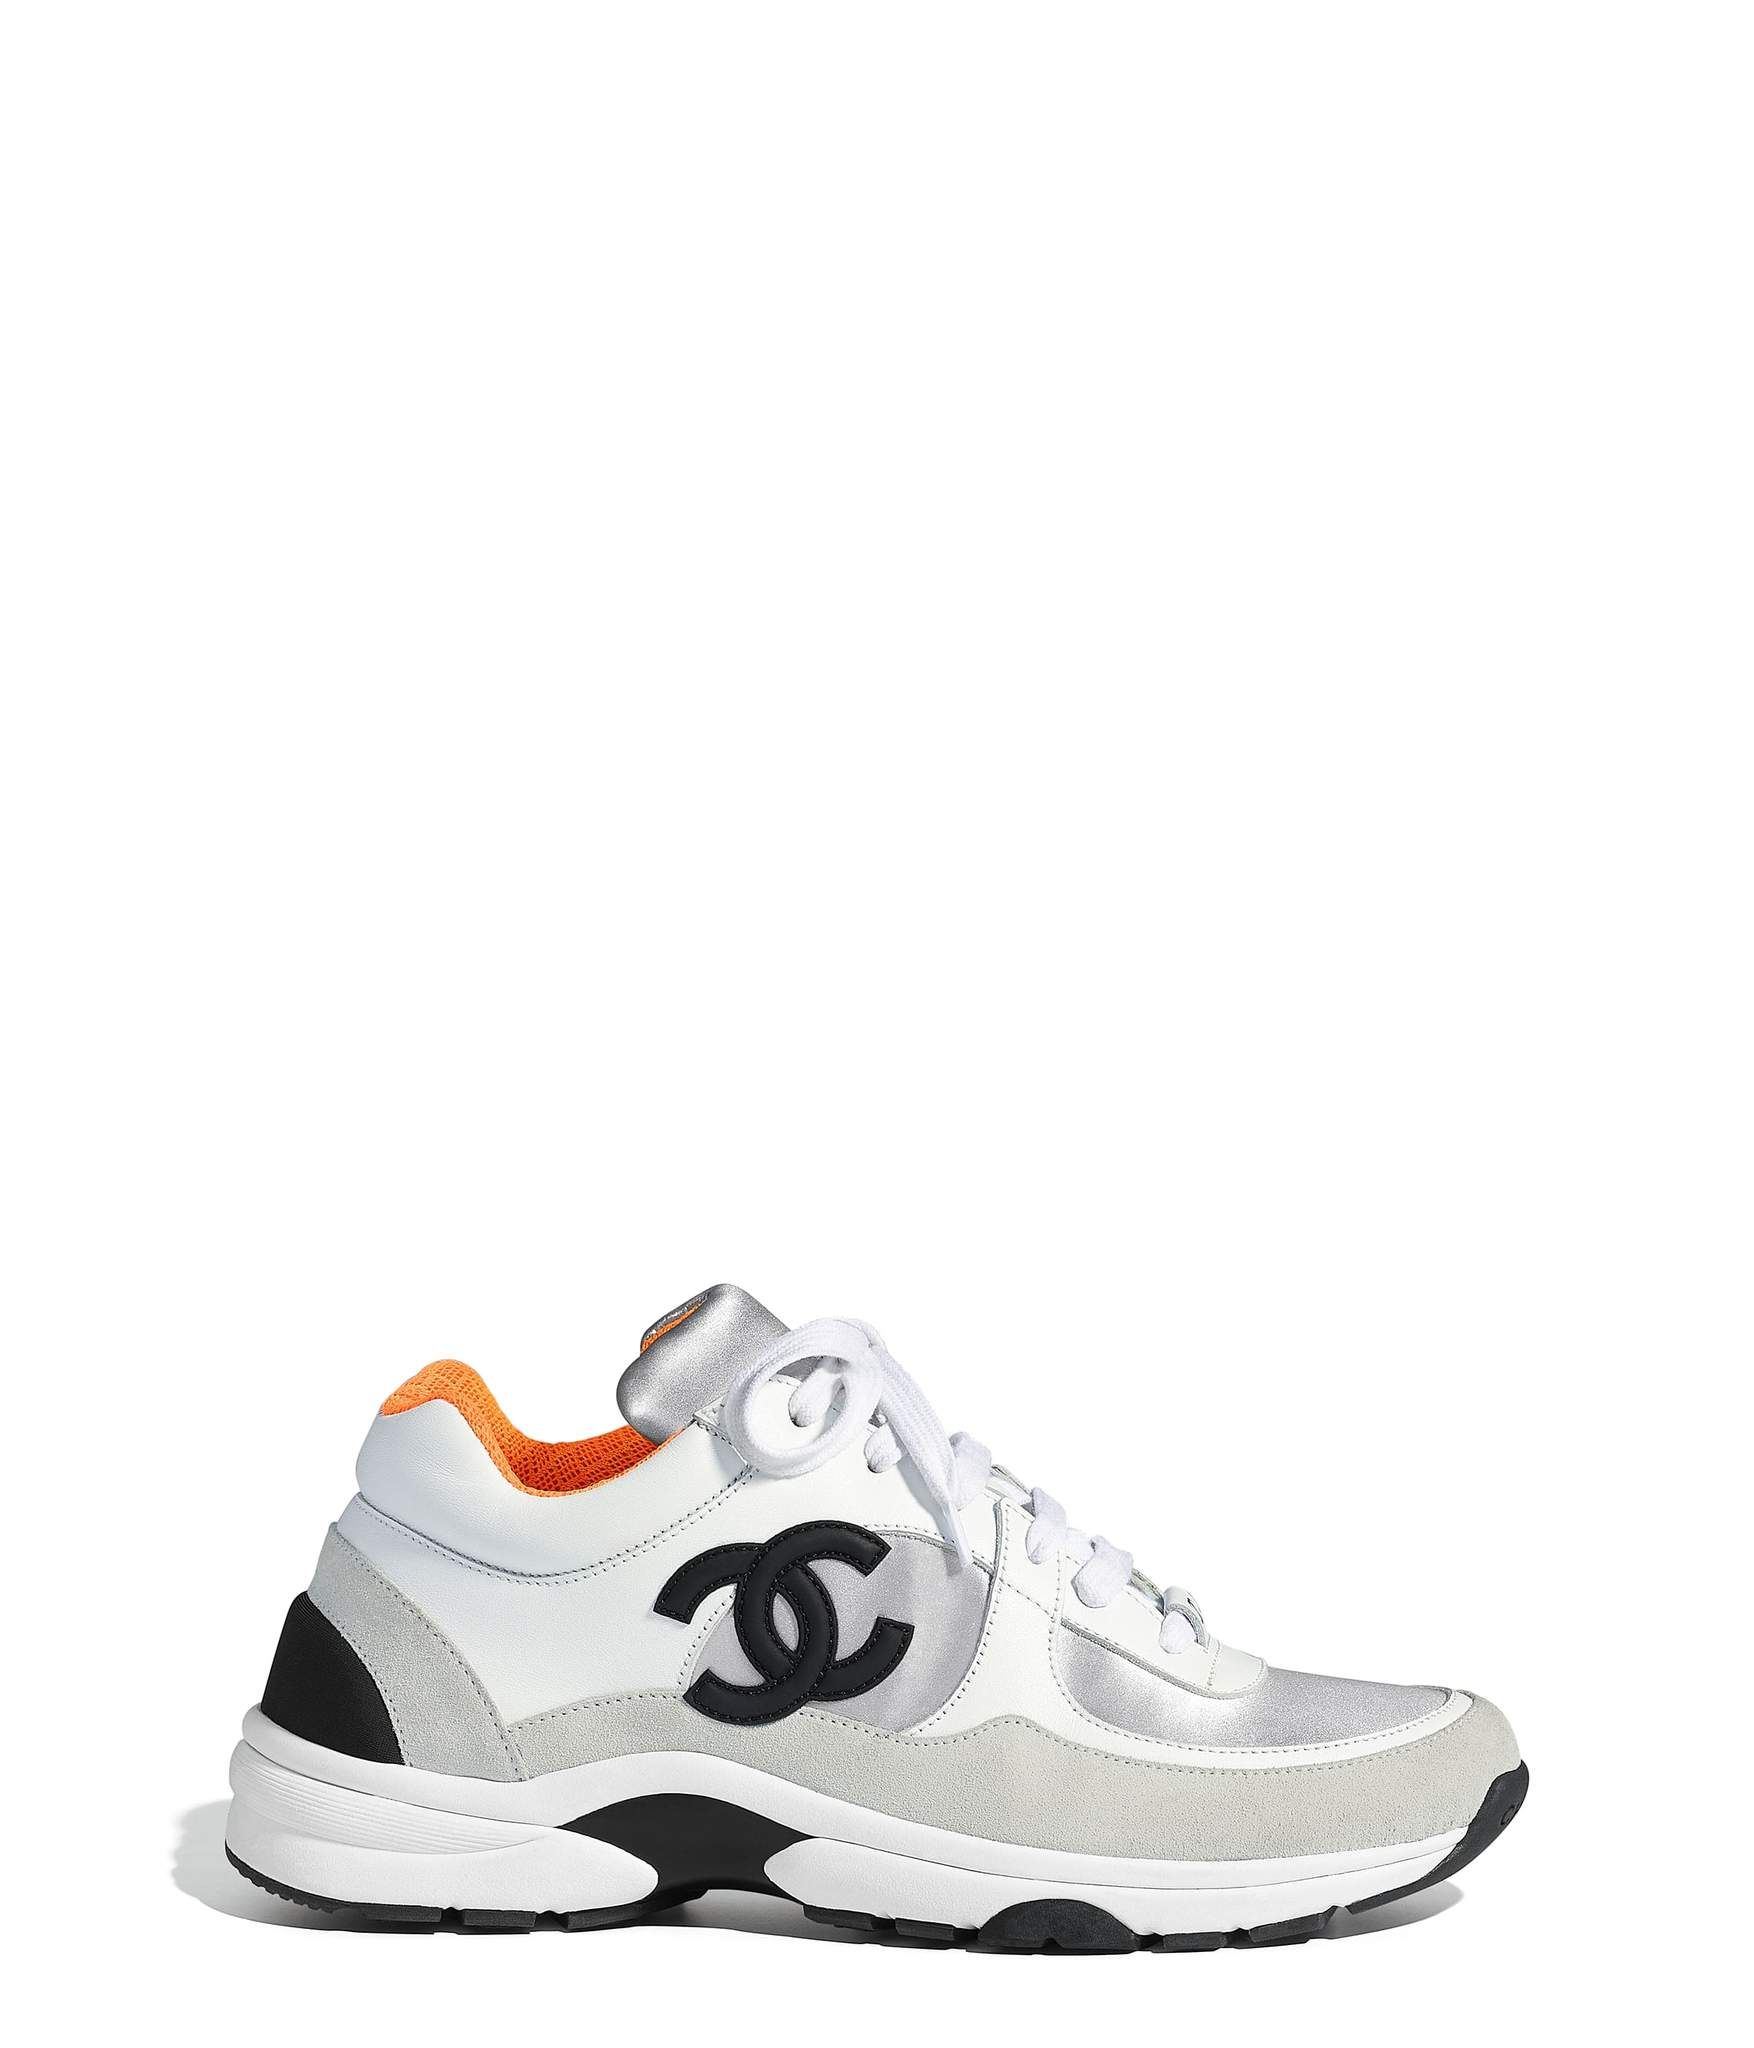 4903e8842 Low New Sneakers, Chanel Sneakers, Sneakers Nike, Air Max Sneakers, Chanel  Official